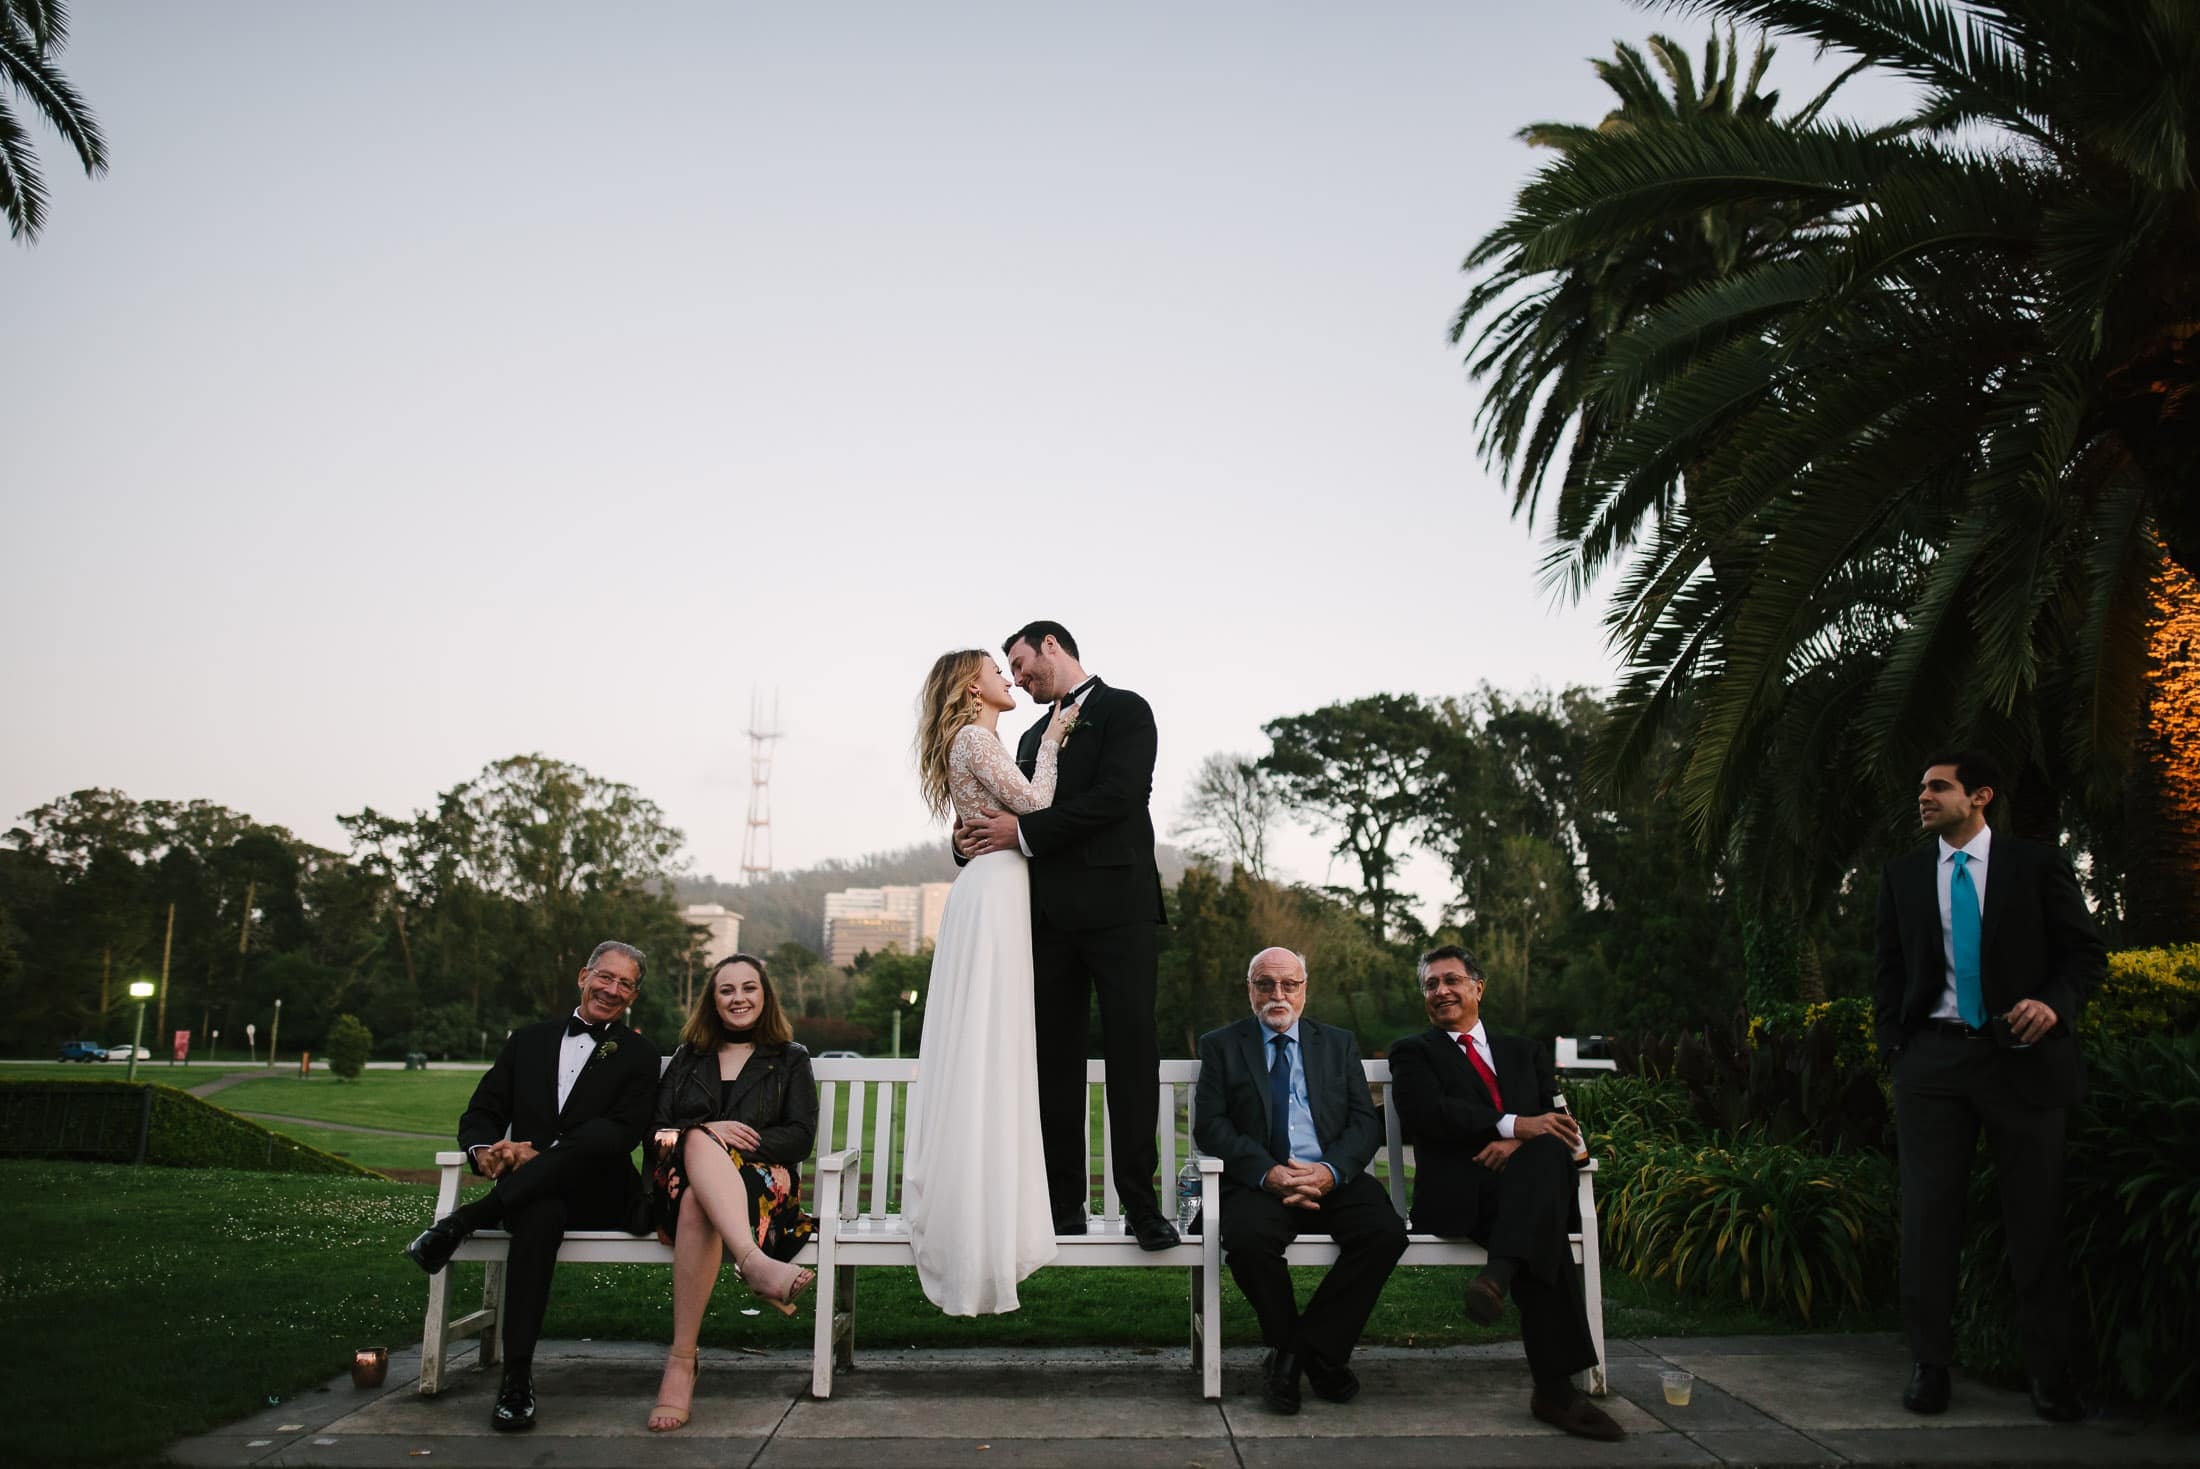 100 Images from Weddings, Elopements, and Engagements